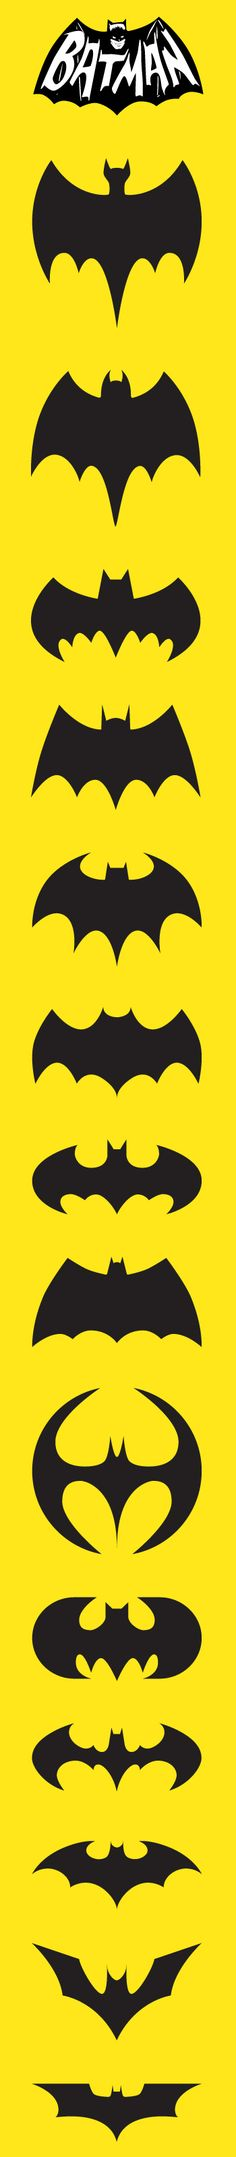 Bat logos on yellow